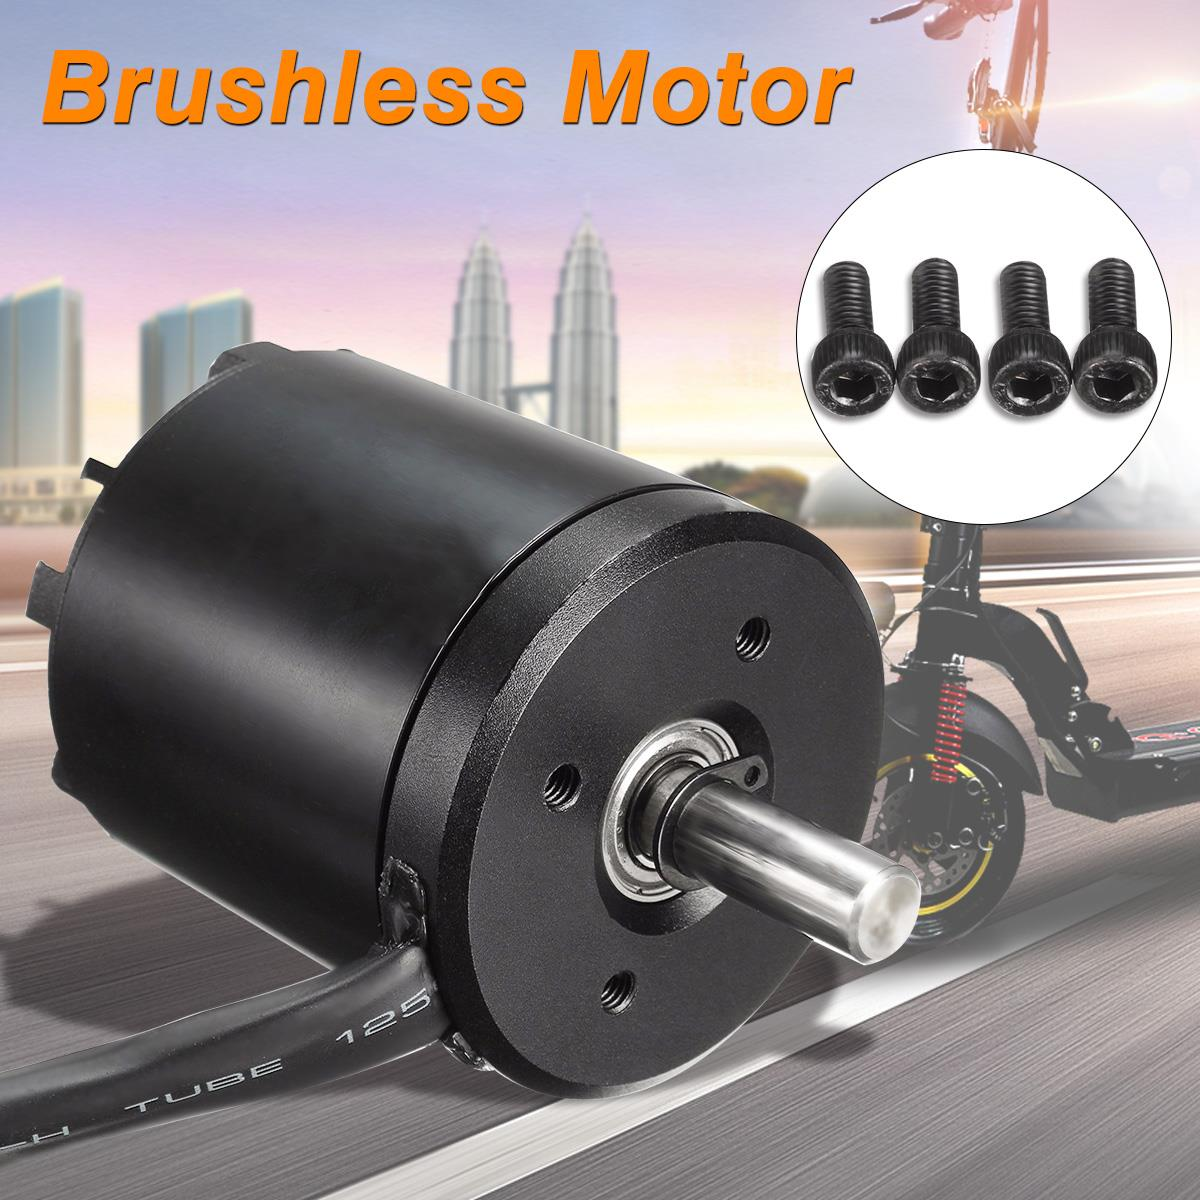 2.6KG 3-8S N5065 5065 <font><b>270KV</b></font> <font><b>Brushless</b></font> Sensored <font><b>Motor</b></font> For Electric Skate Scooter <font><b>Motor</b></font> Accessories image